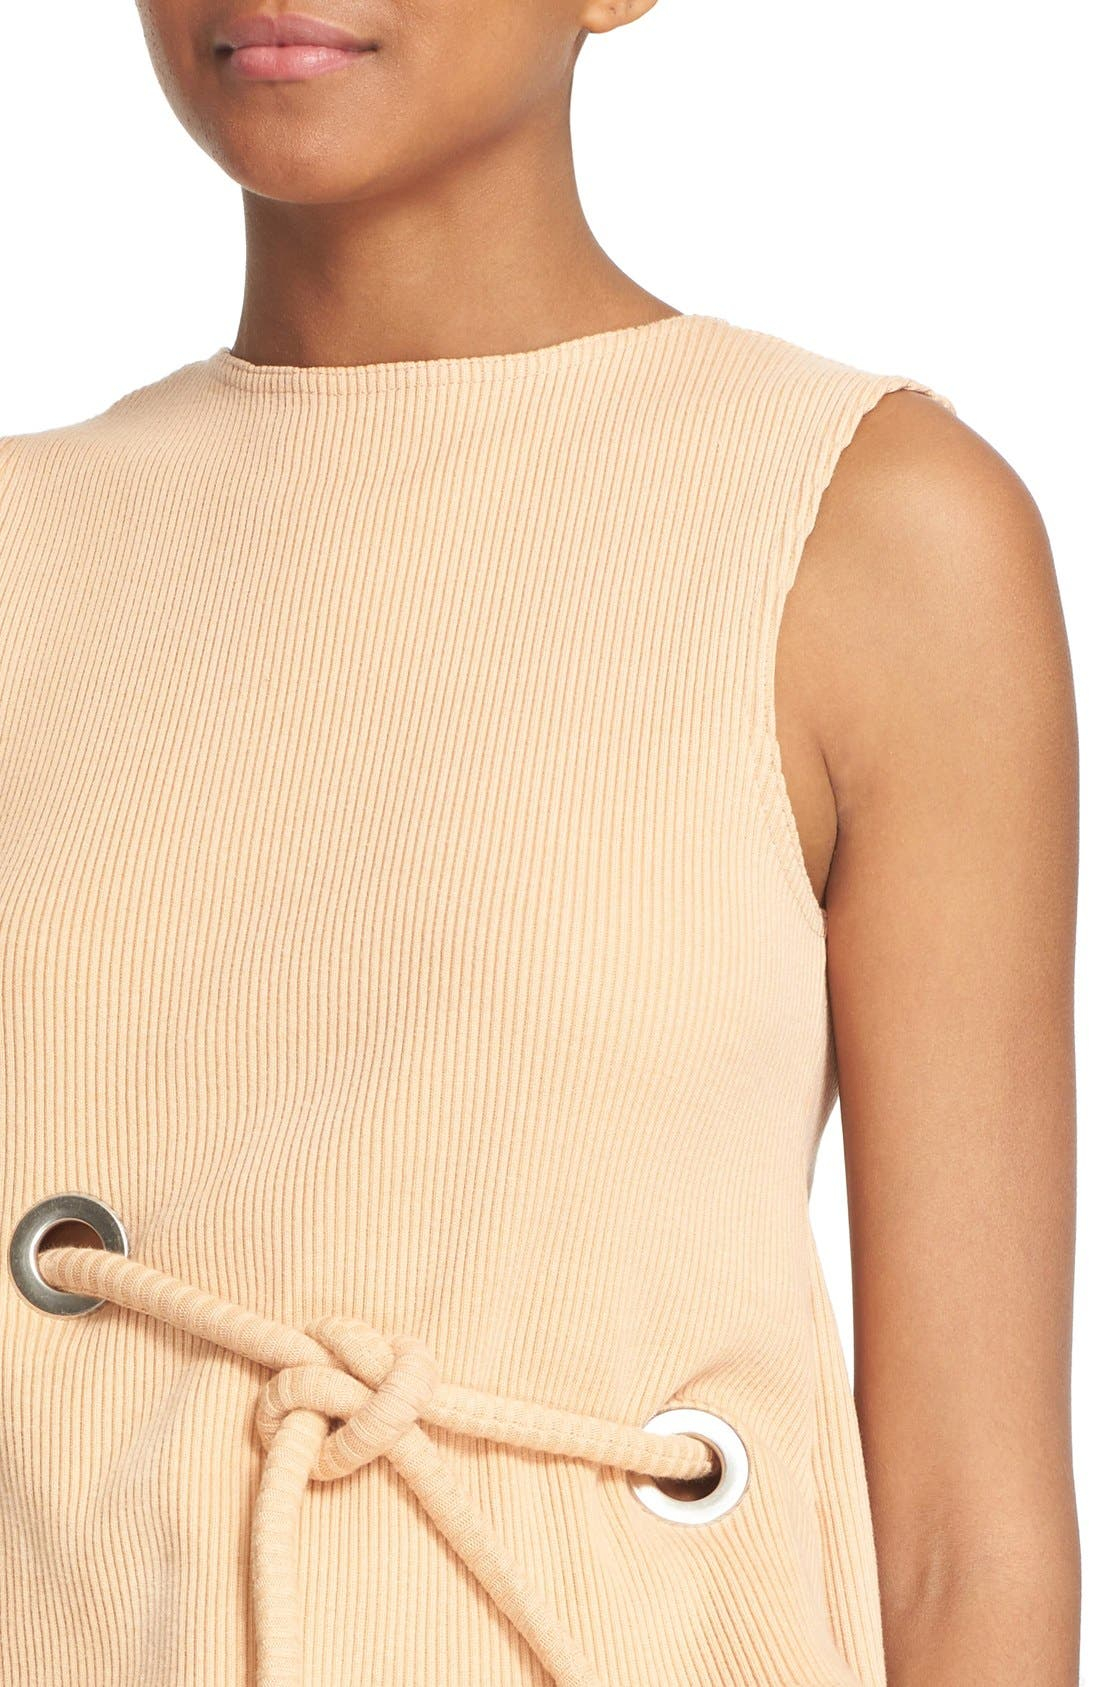 Sleeveless Ribbed Stretch Cotton Top,                             Alternate thumbnail 8, color,                             950